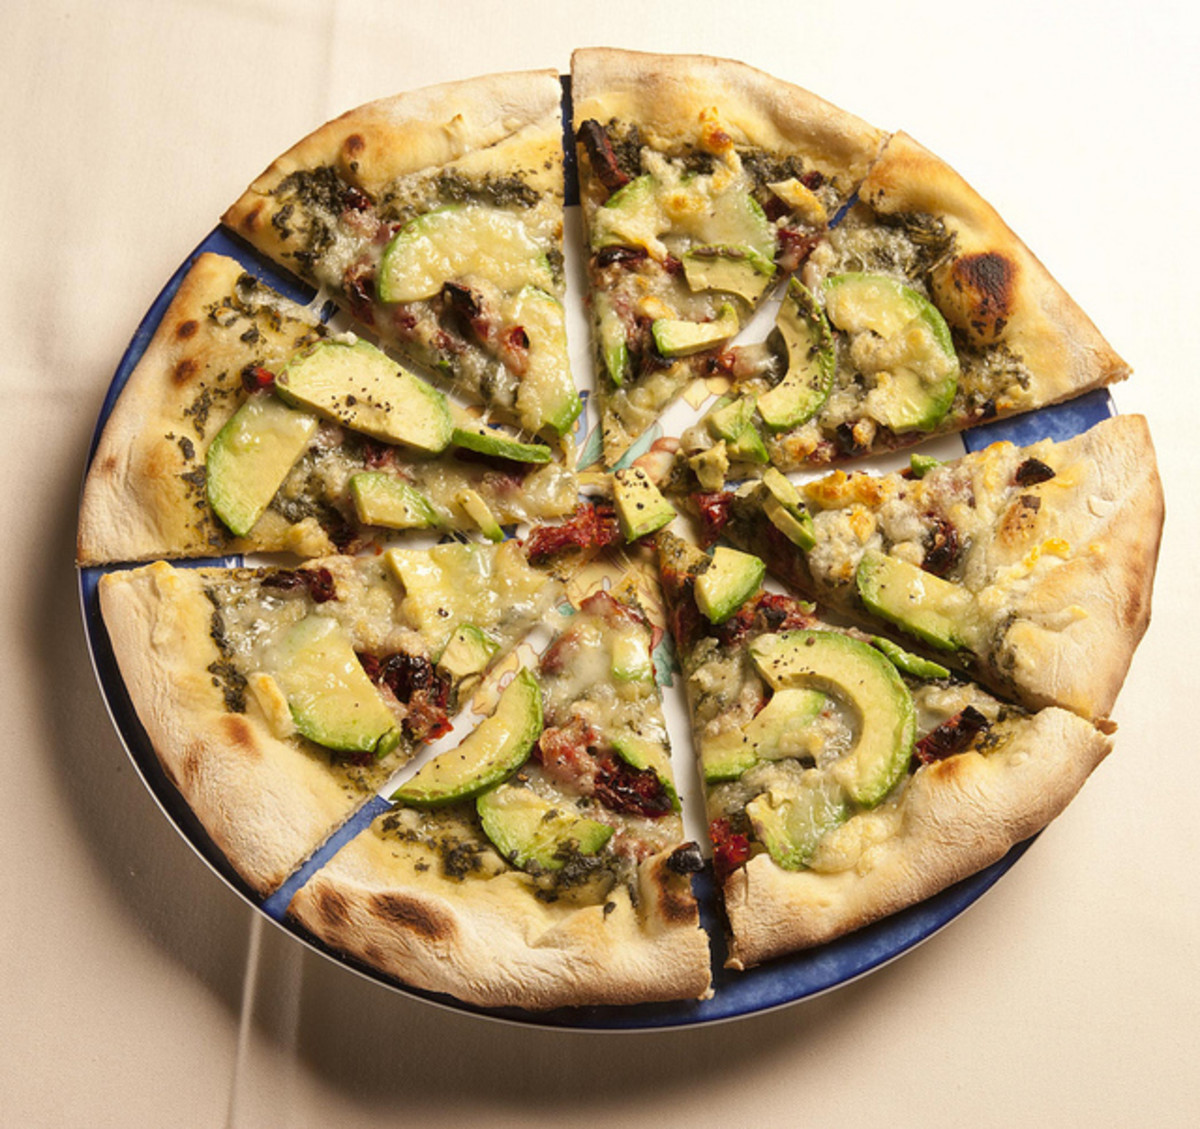 Sun Dried Tomato and Avocado Pizza. Try the avocado tartar sauce listed below for dipping with this meal.